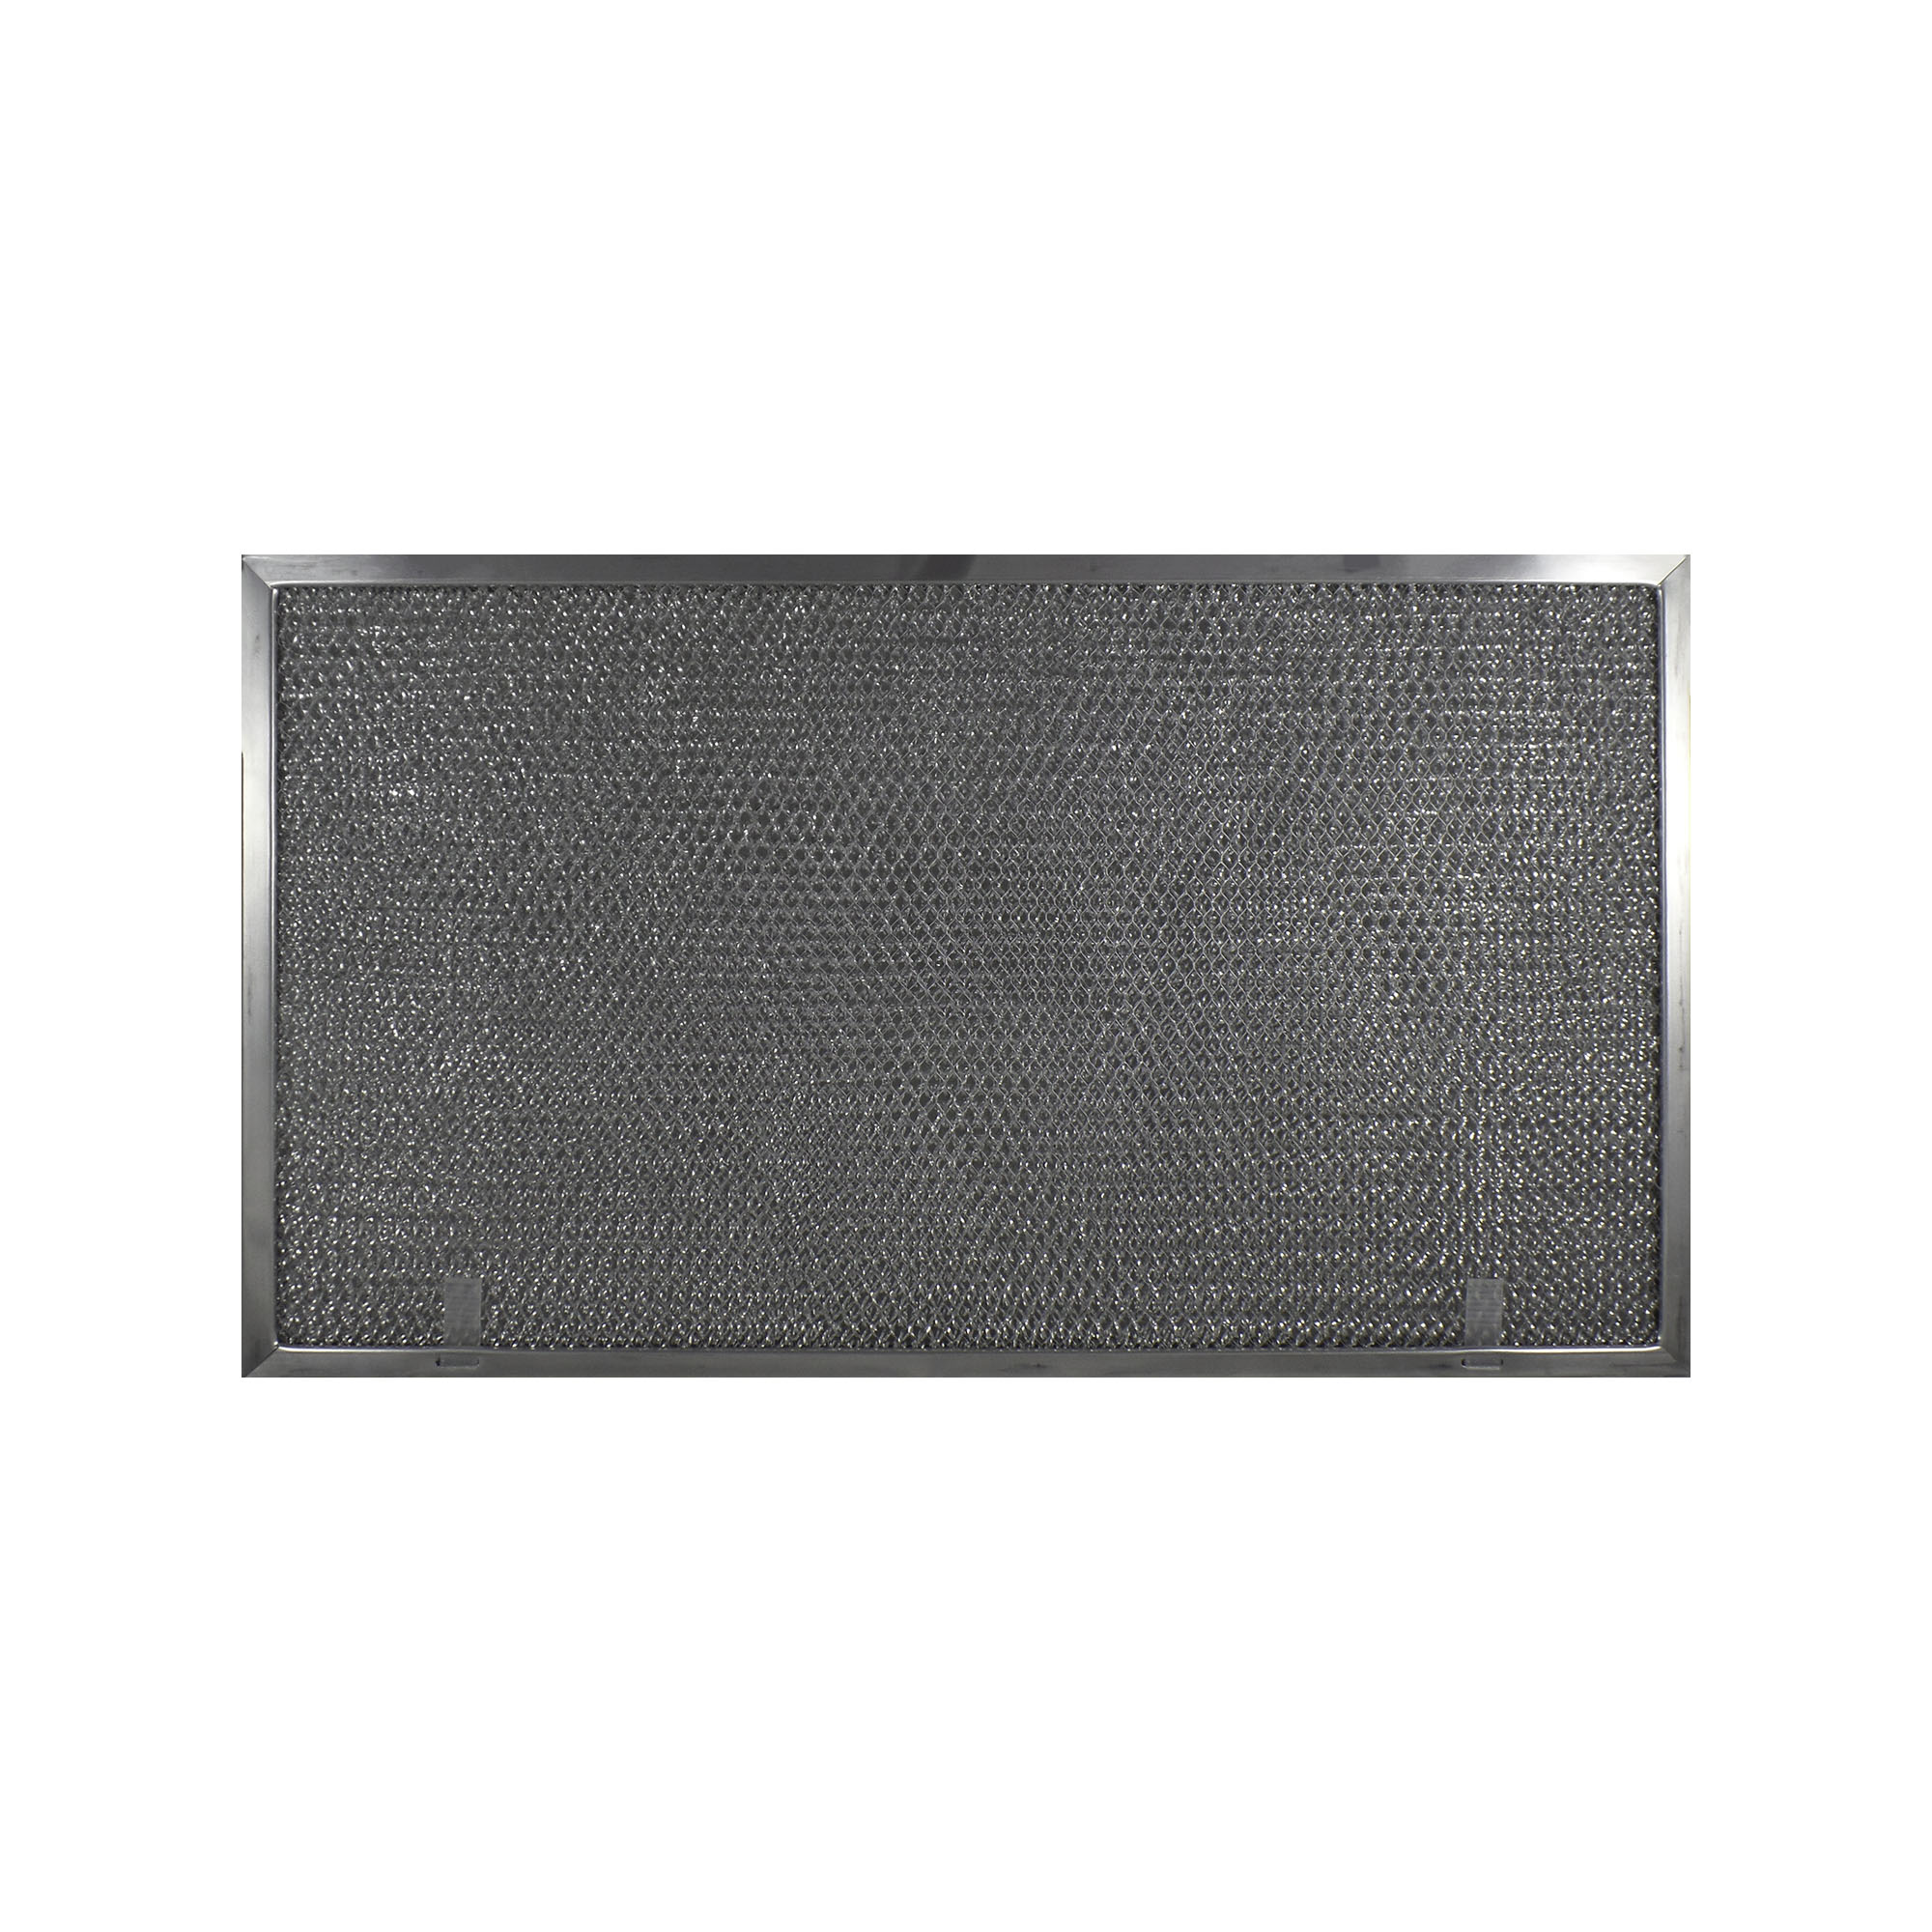 Broan S99010307 Aluminum Mesh Grease Range Hood Filter